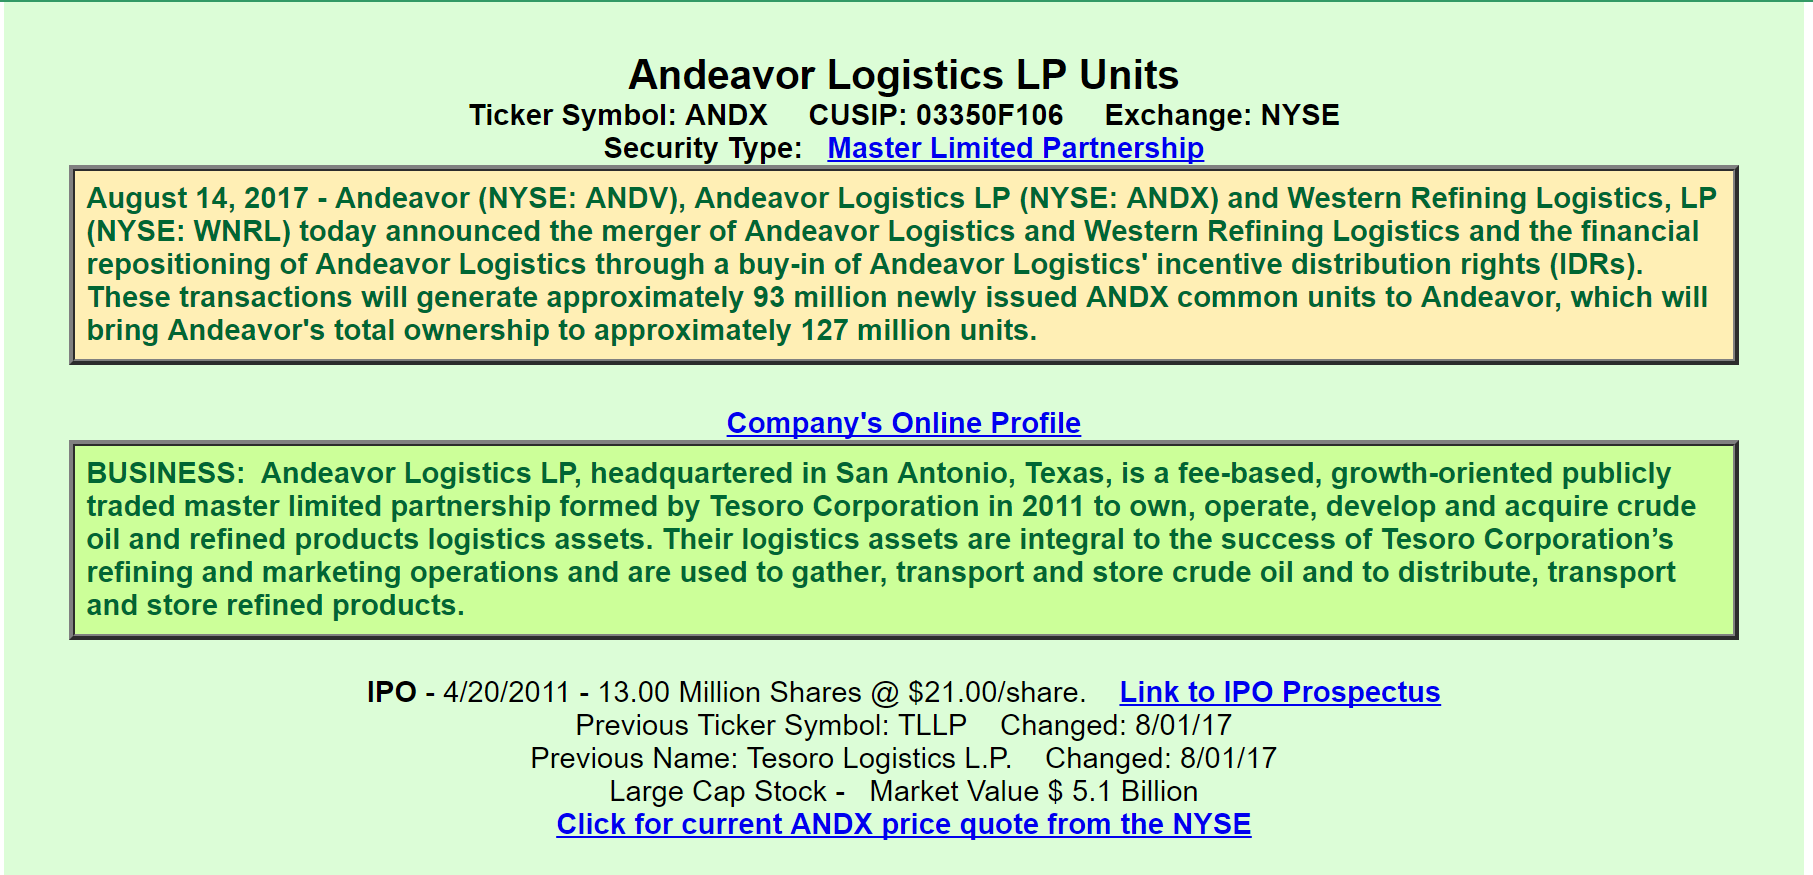 Andeavor Logistics From The Perspective Of A Preferred Investor